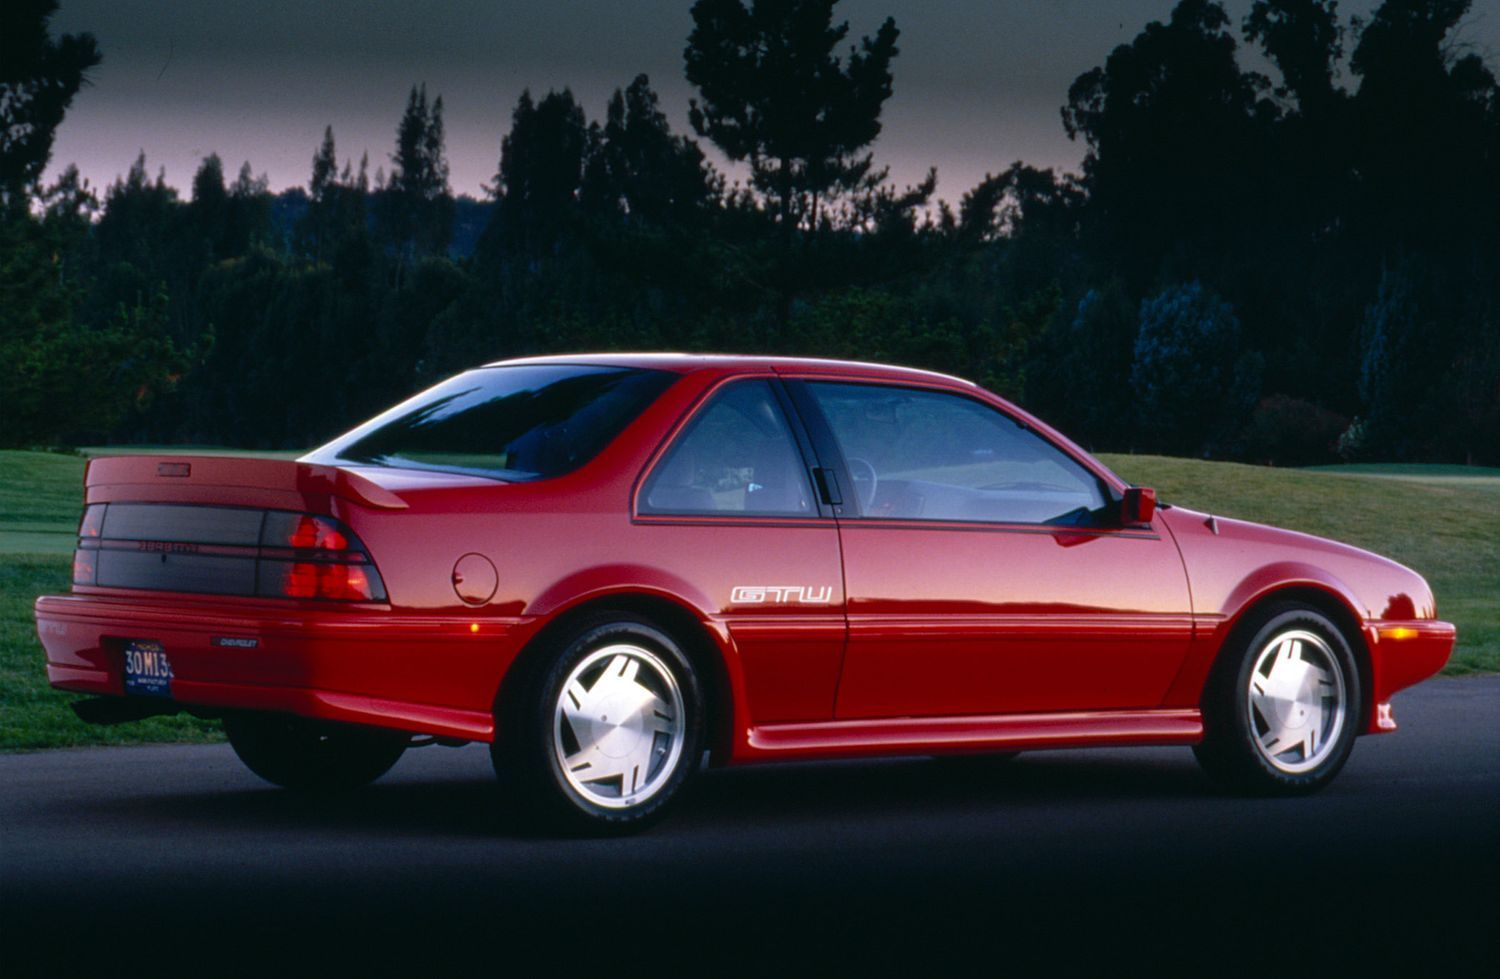 Pleasing Red 1991 Chevy Beretta One Of The Cars We Had When I Was A Kid My Wiring Cloud Orsalboapumohammedshrineorg